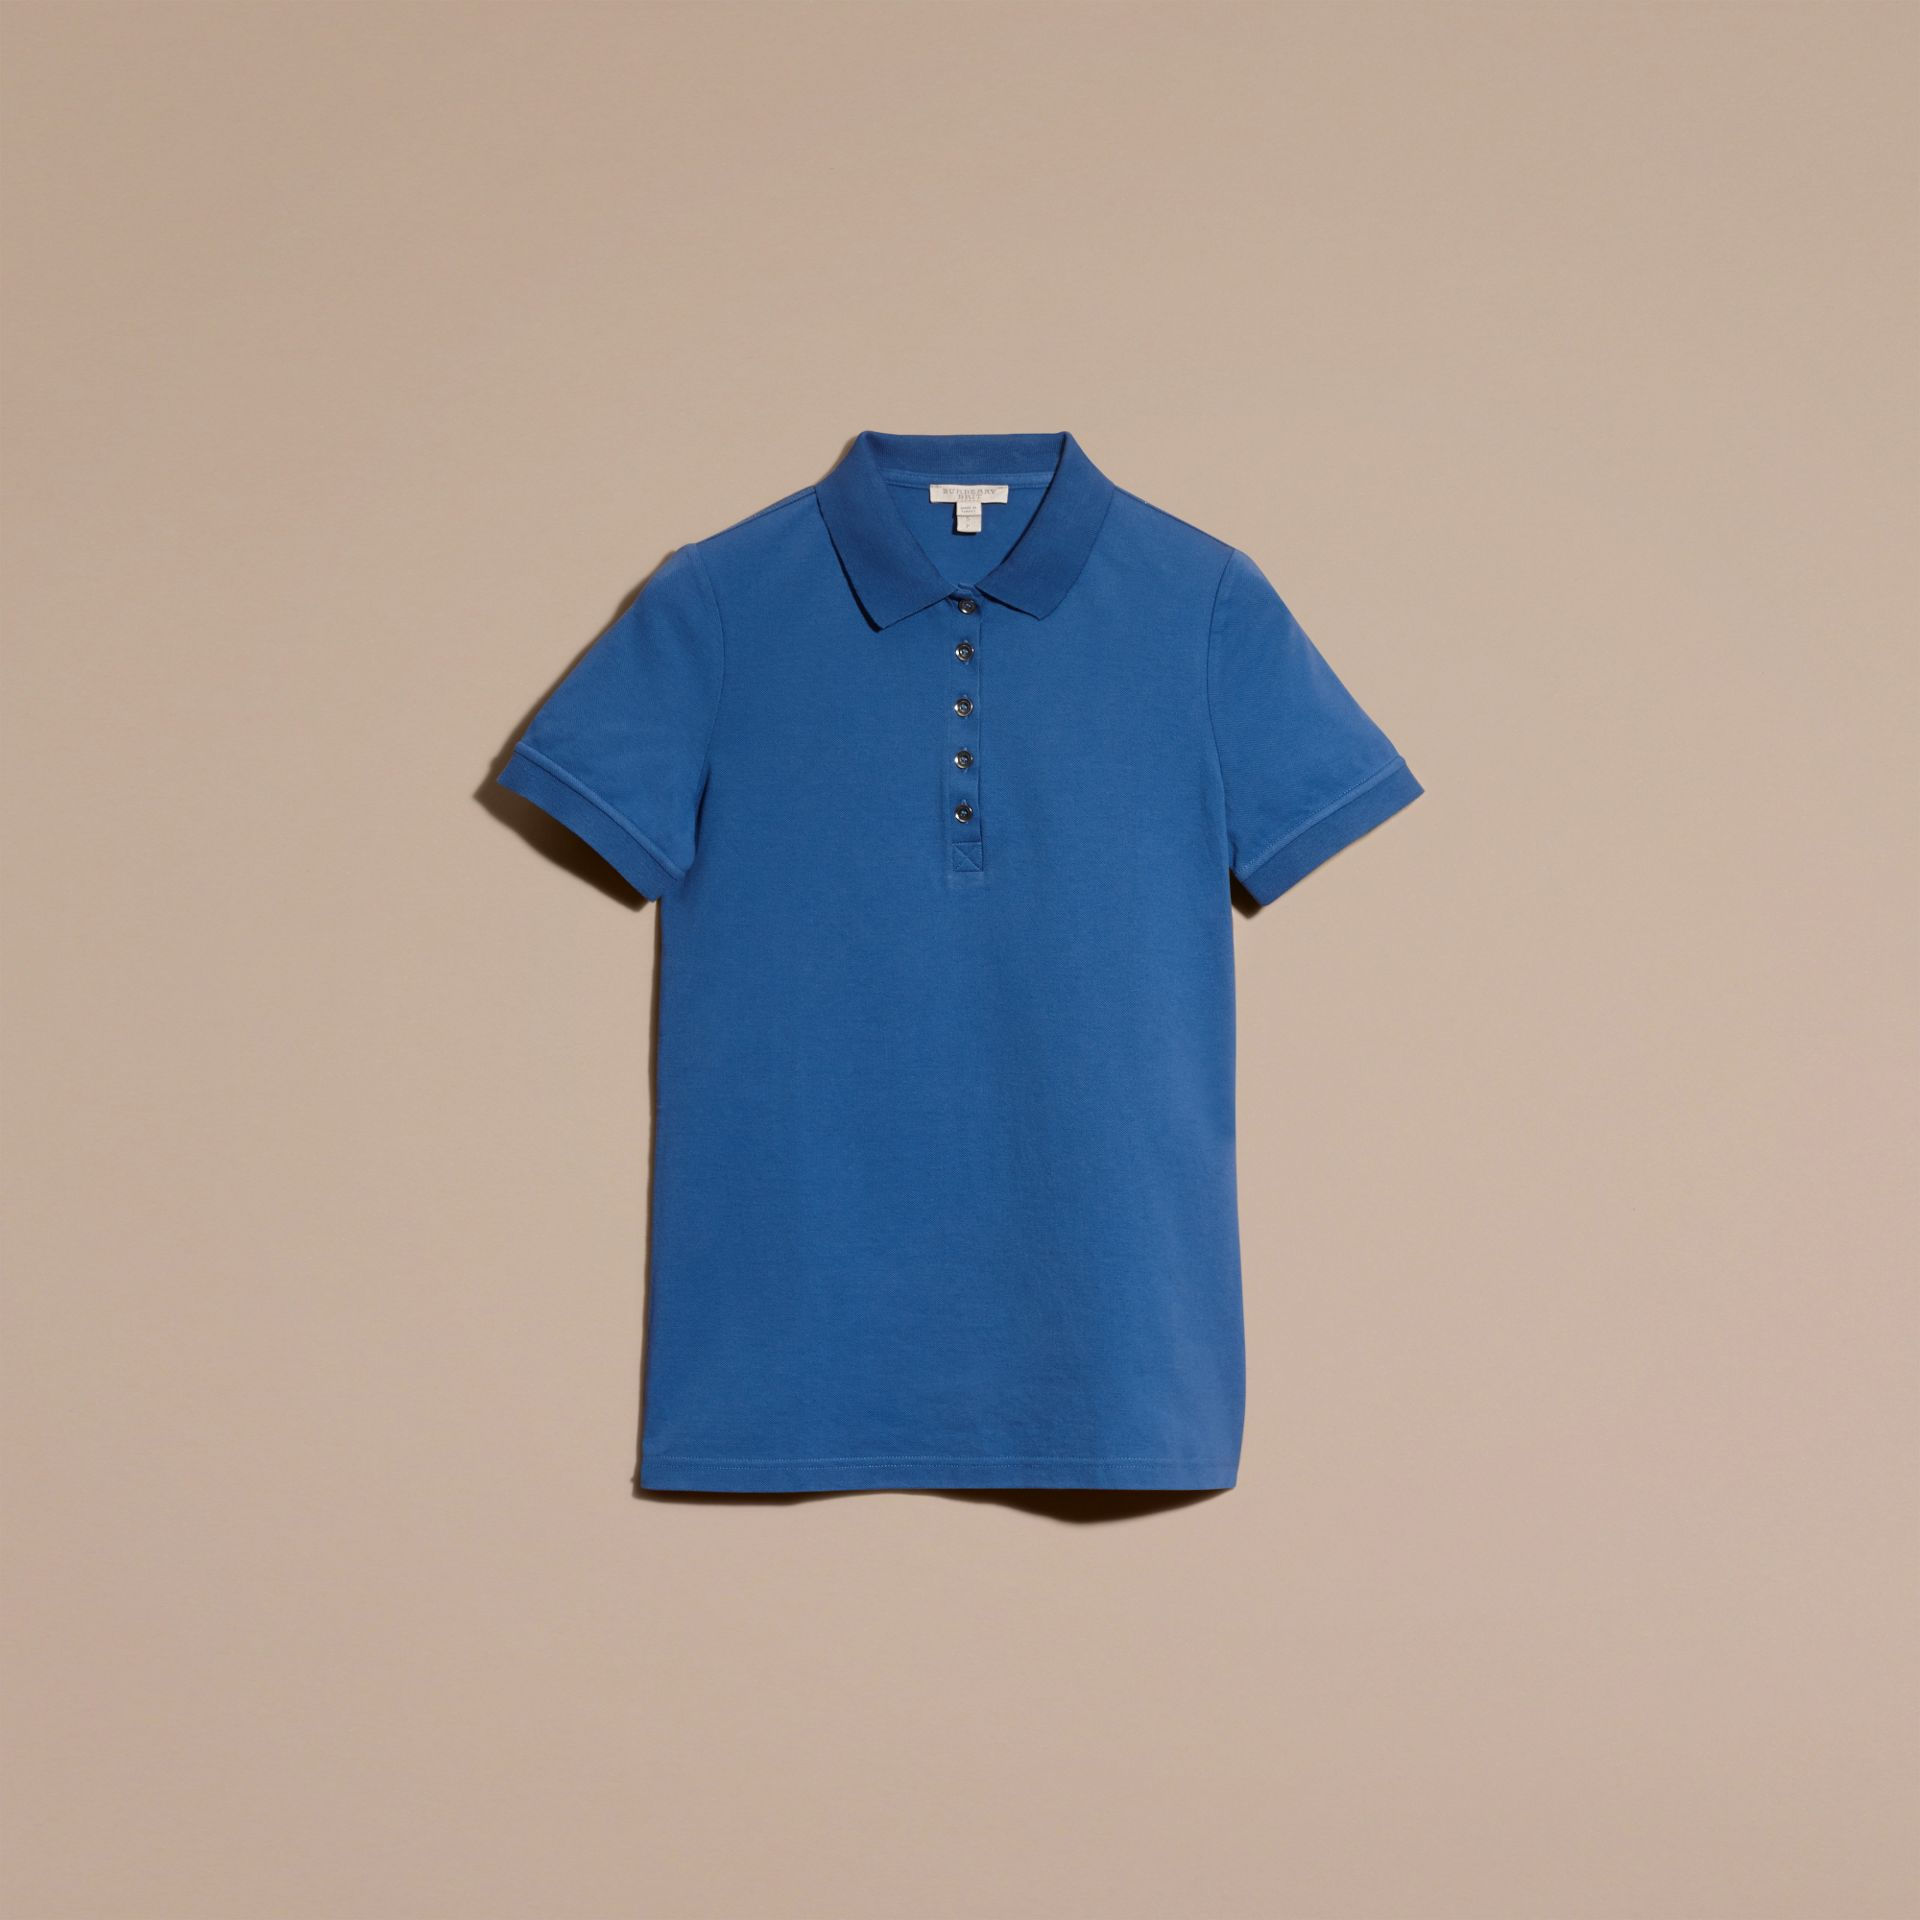 Bright cobalt Check Trim Stretch Cotton Piqué Polo Shirt Bright Cobalt - gallery image 4